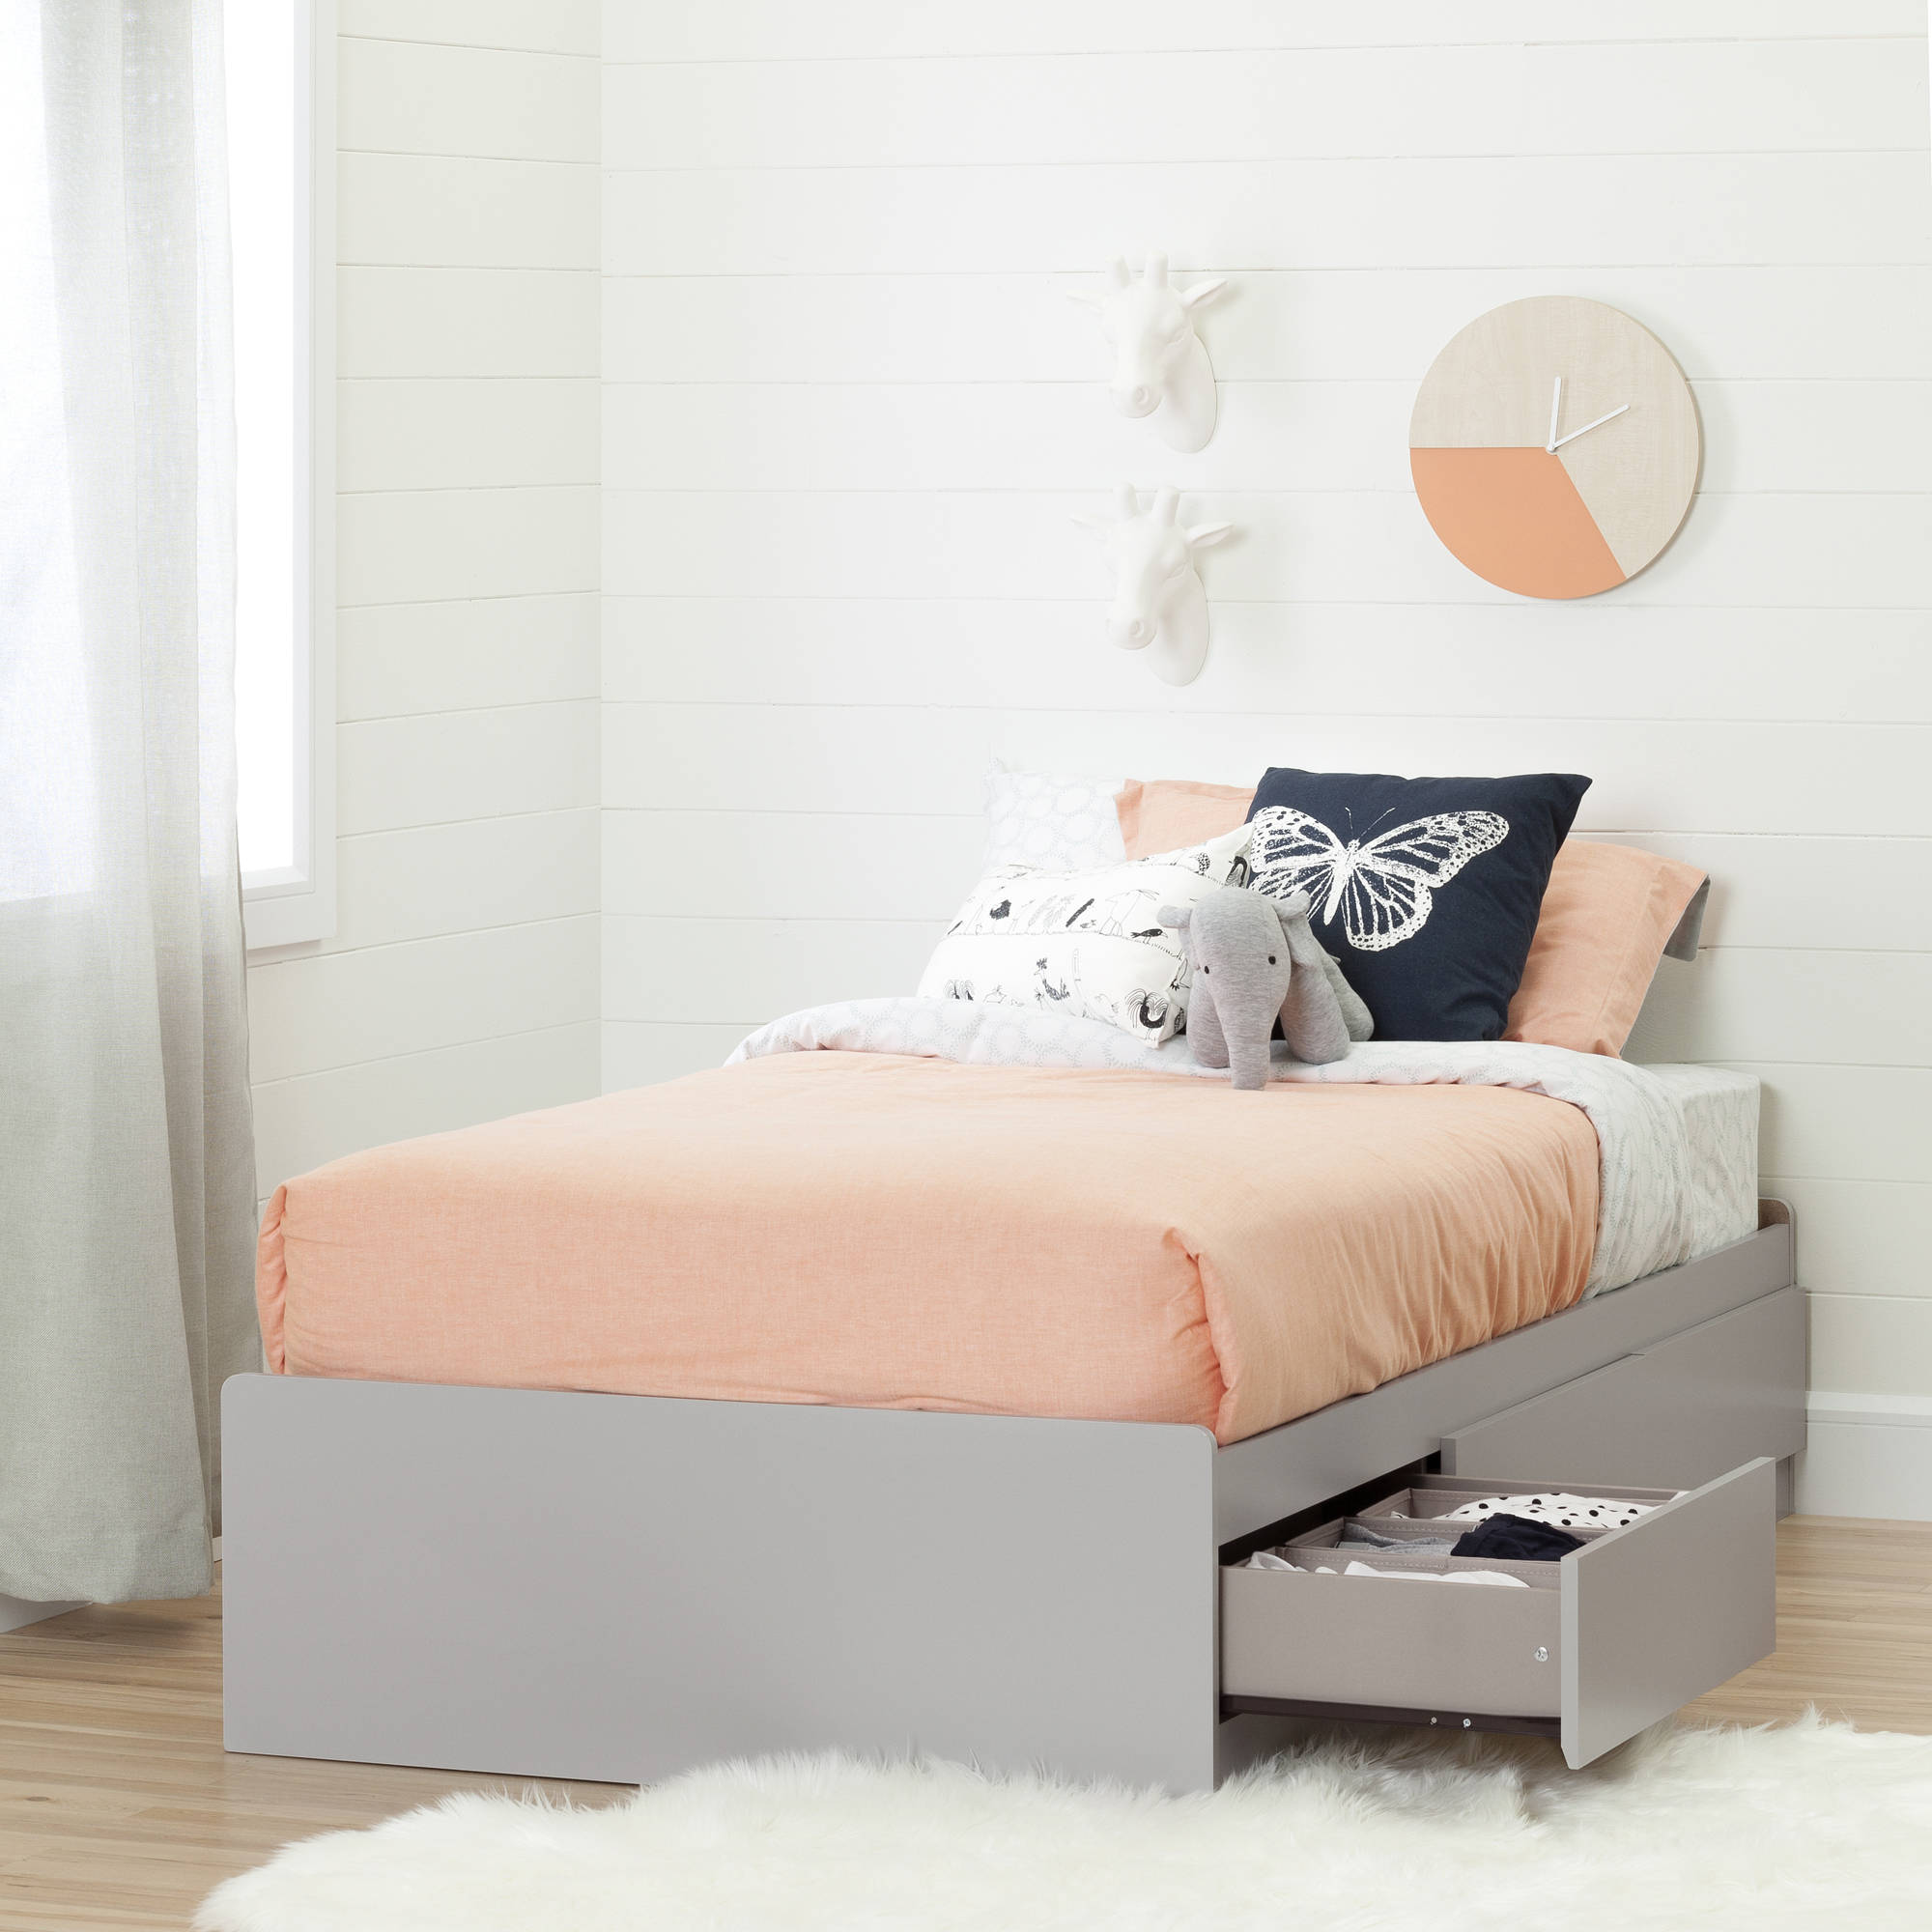 South Shore Cookie Twin Mates Bed with 3 Drawers, Soft Gray